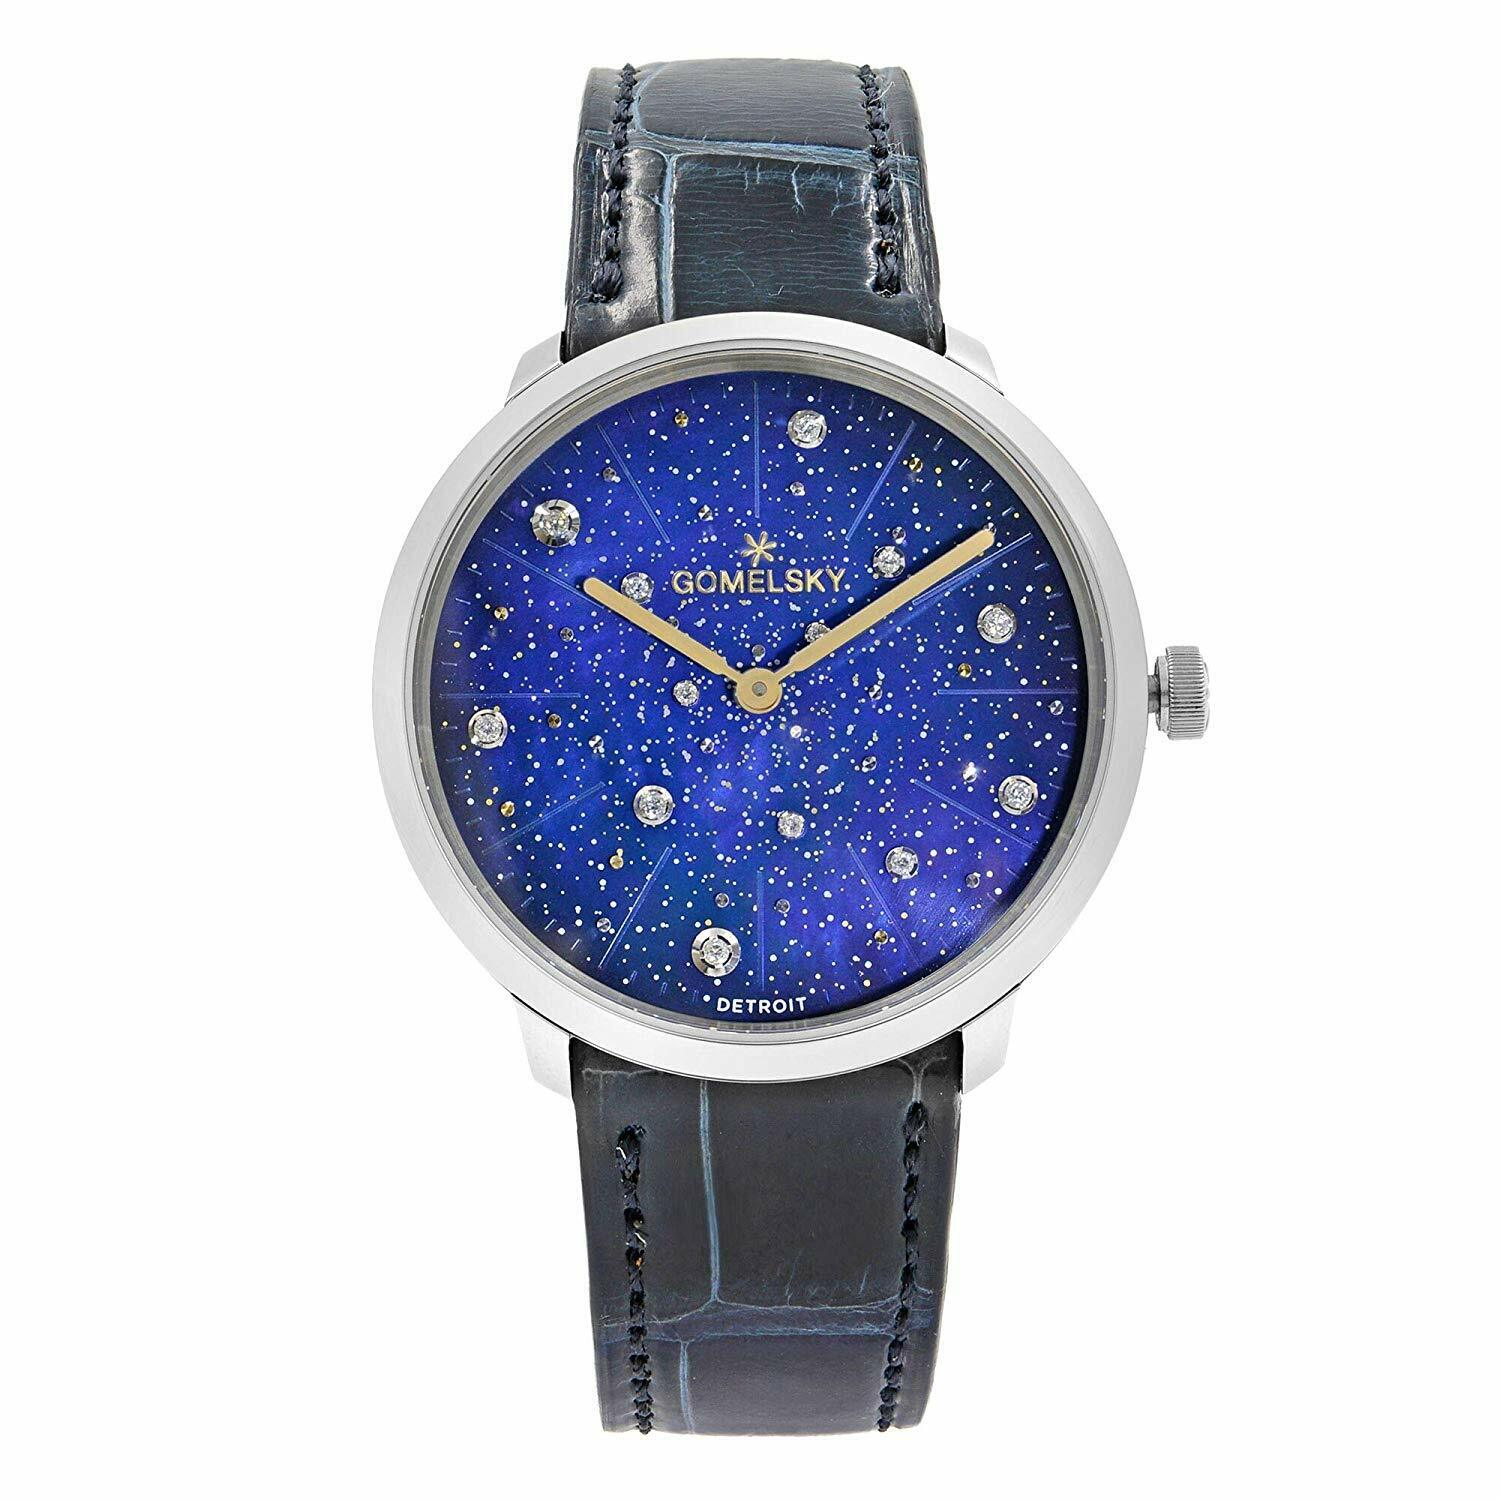 Gomelsky Audry Steel Diamond Blue Dial Quartz Women's Watch G0120124579 Shinola